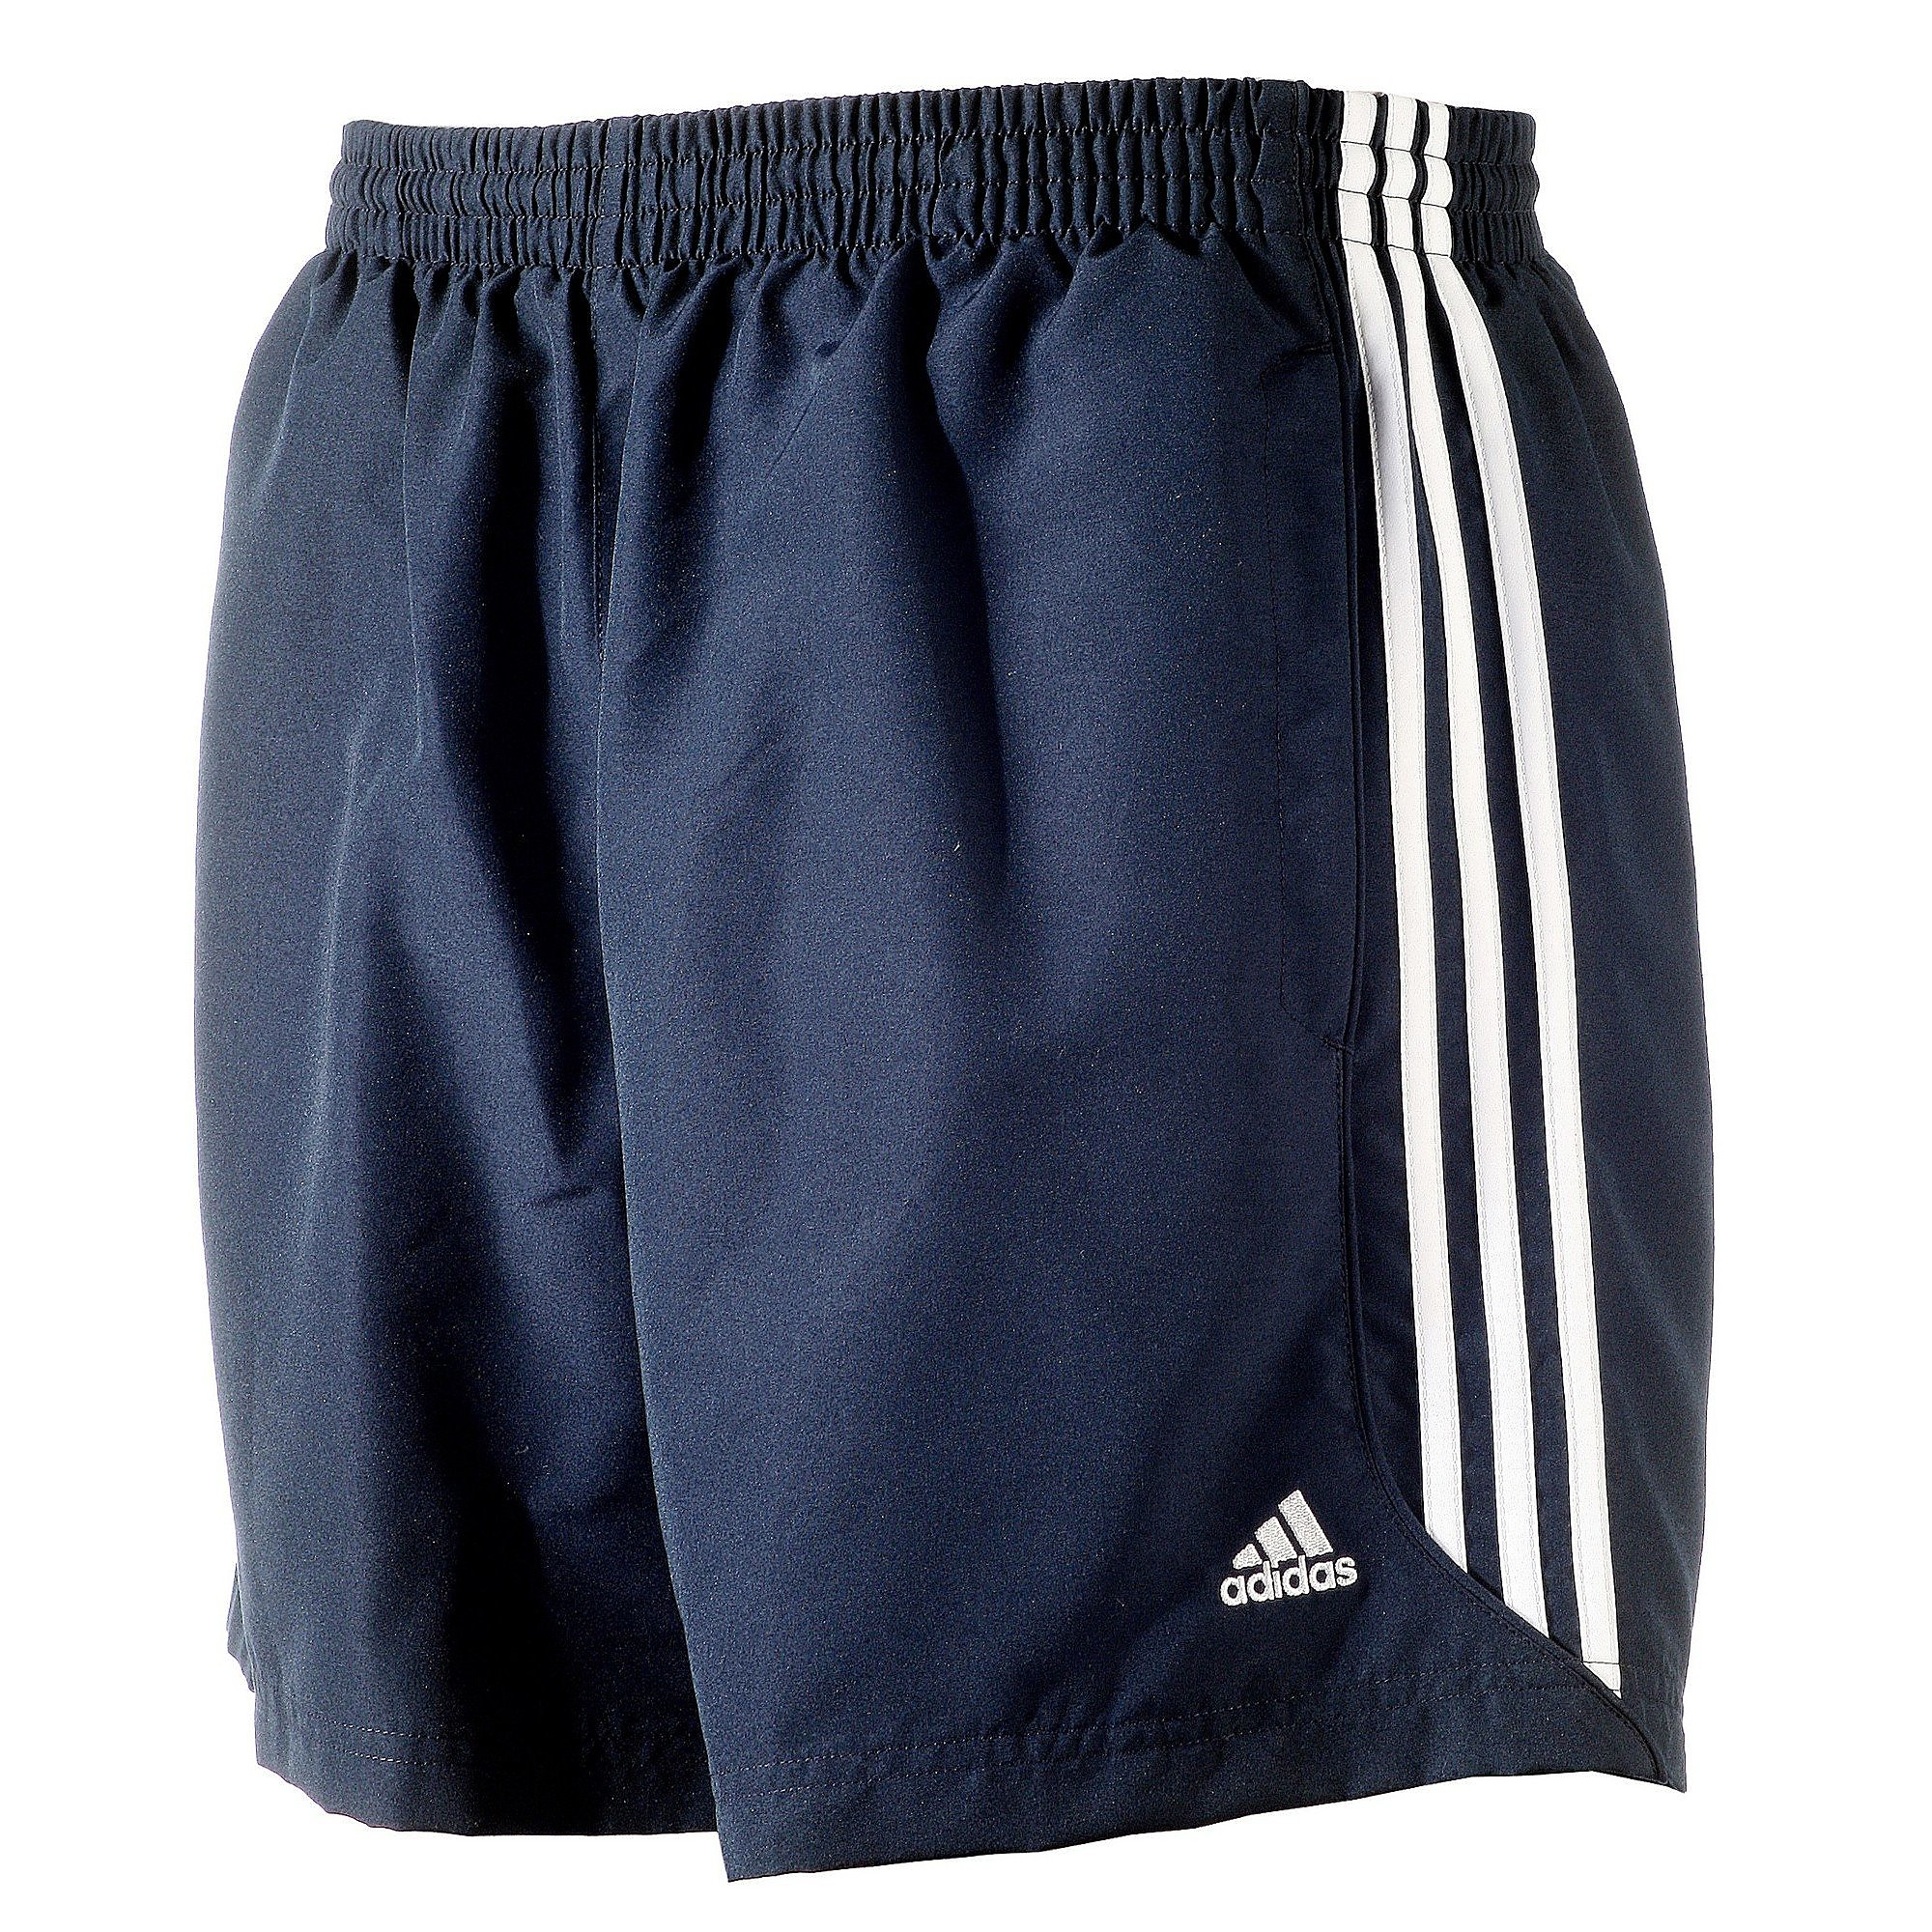 ADIDAS ESSENTIAL 3-STRIPES CHELSEA BLAUW HEREN